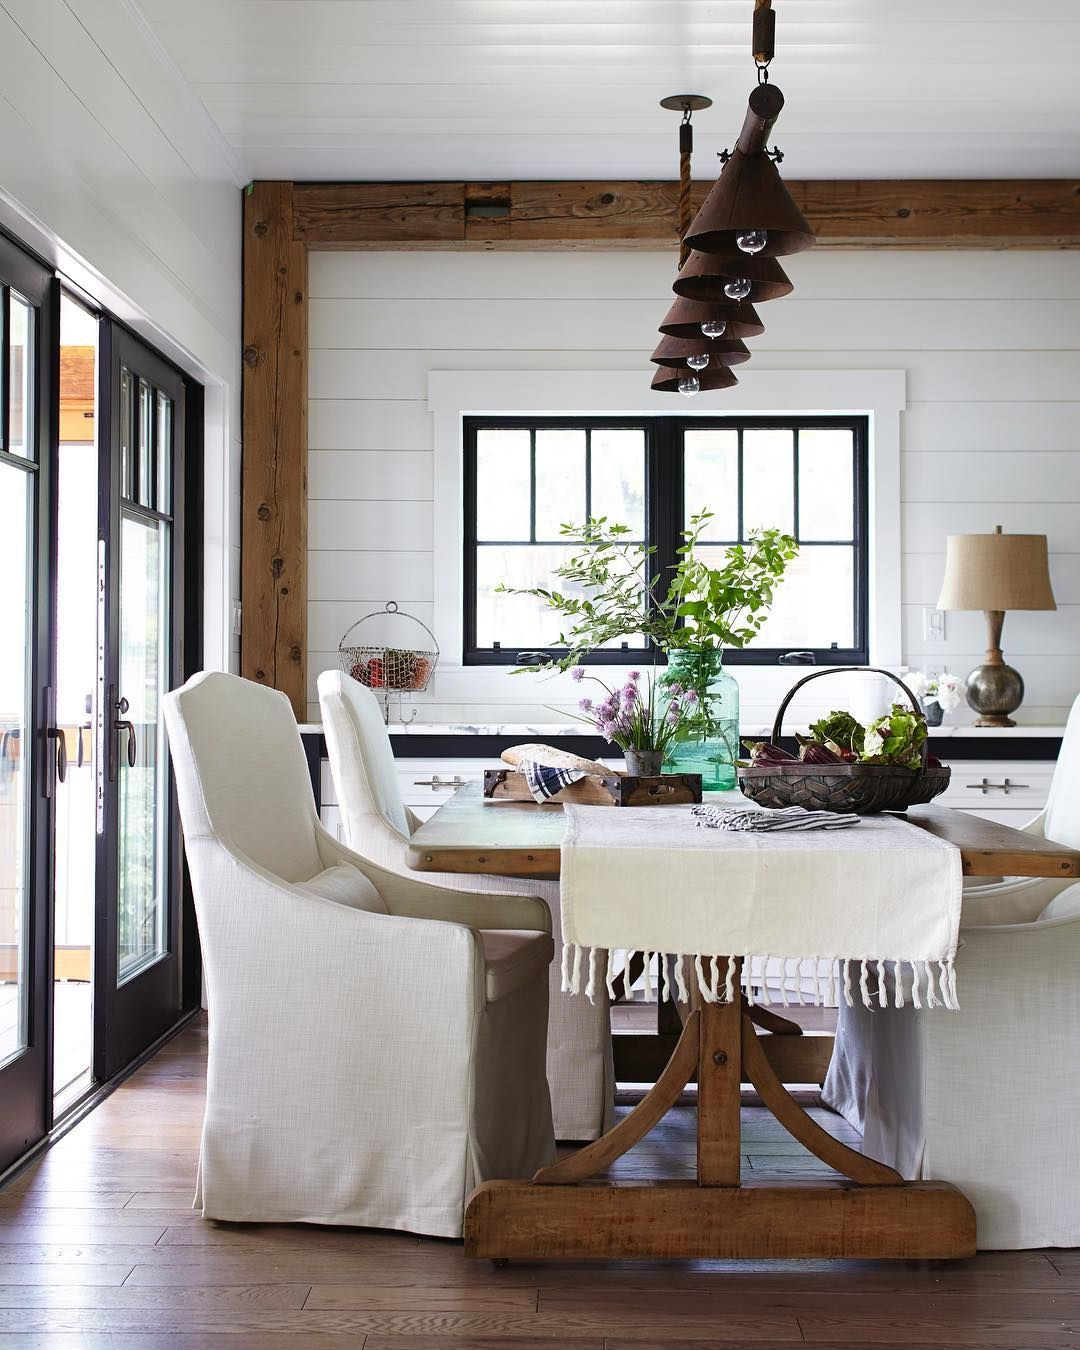 Rustic Farmhouse Style Dining Room With Black Windows, Slipcovered Chairs,  Rustic Beams And Shiplap.